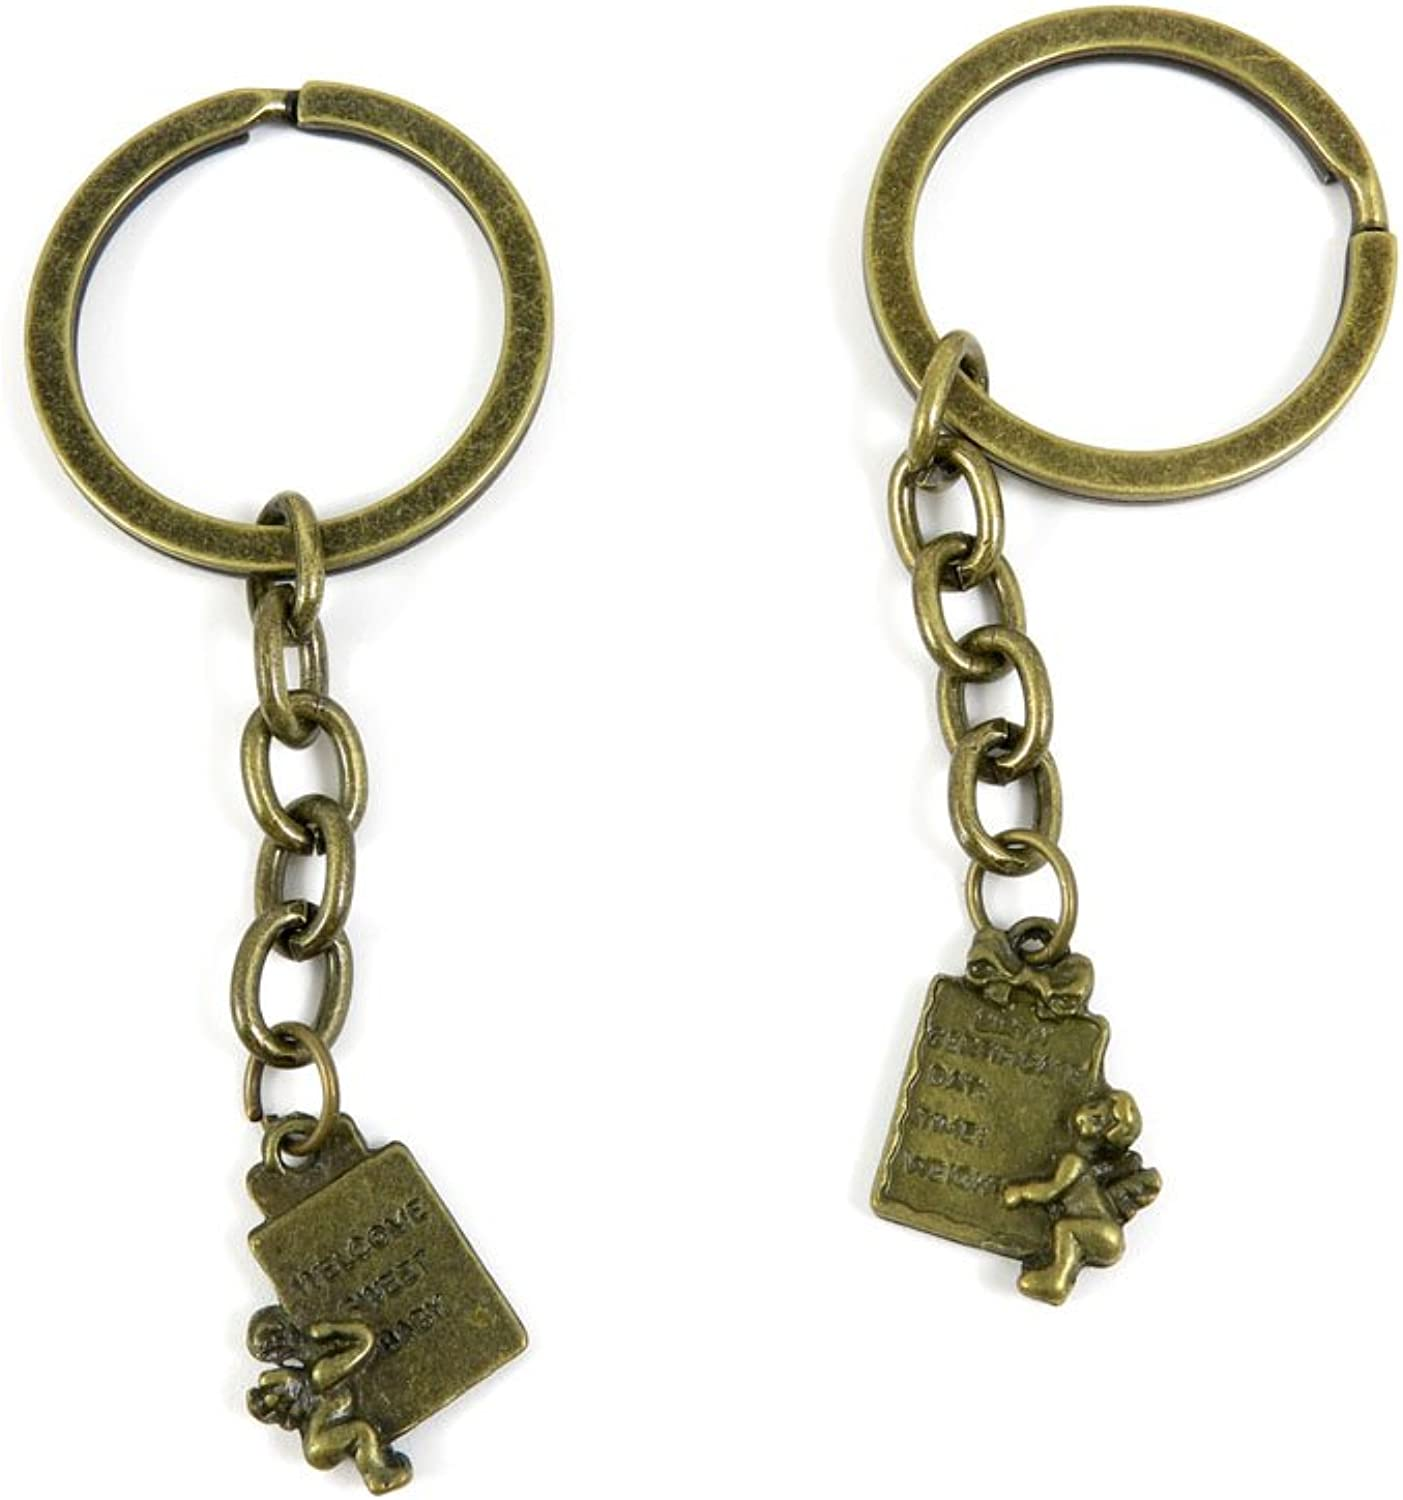 230 Pieces Fashion Jewelry Keyring Keychain Door Car Key Tag Ring Chain Supplier Supply Wholesale Bulk Lots T5QD1 Gift Cupid Angel